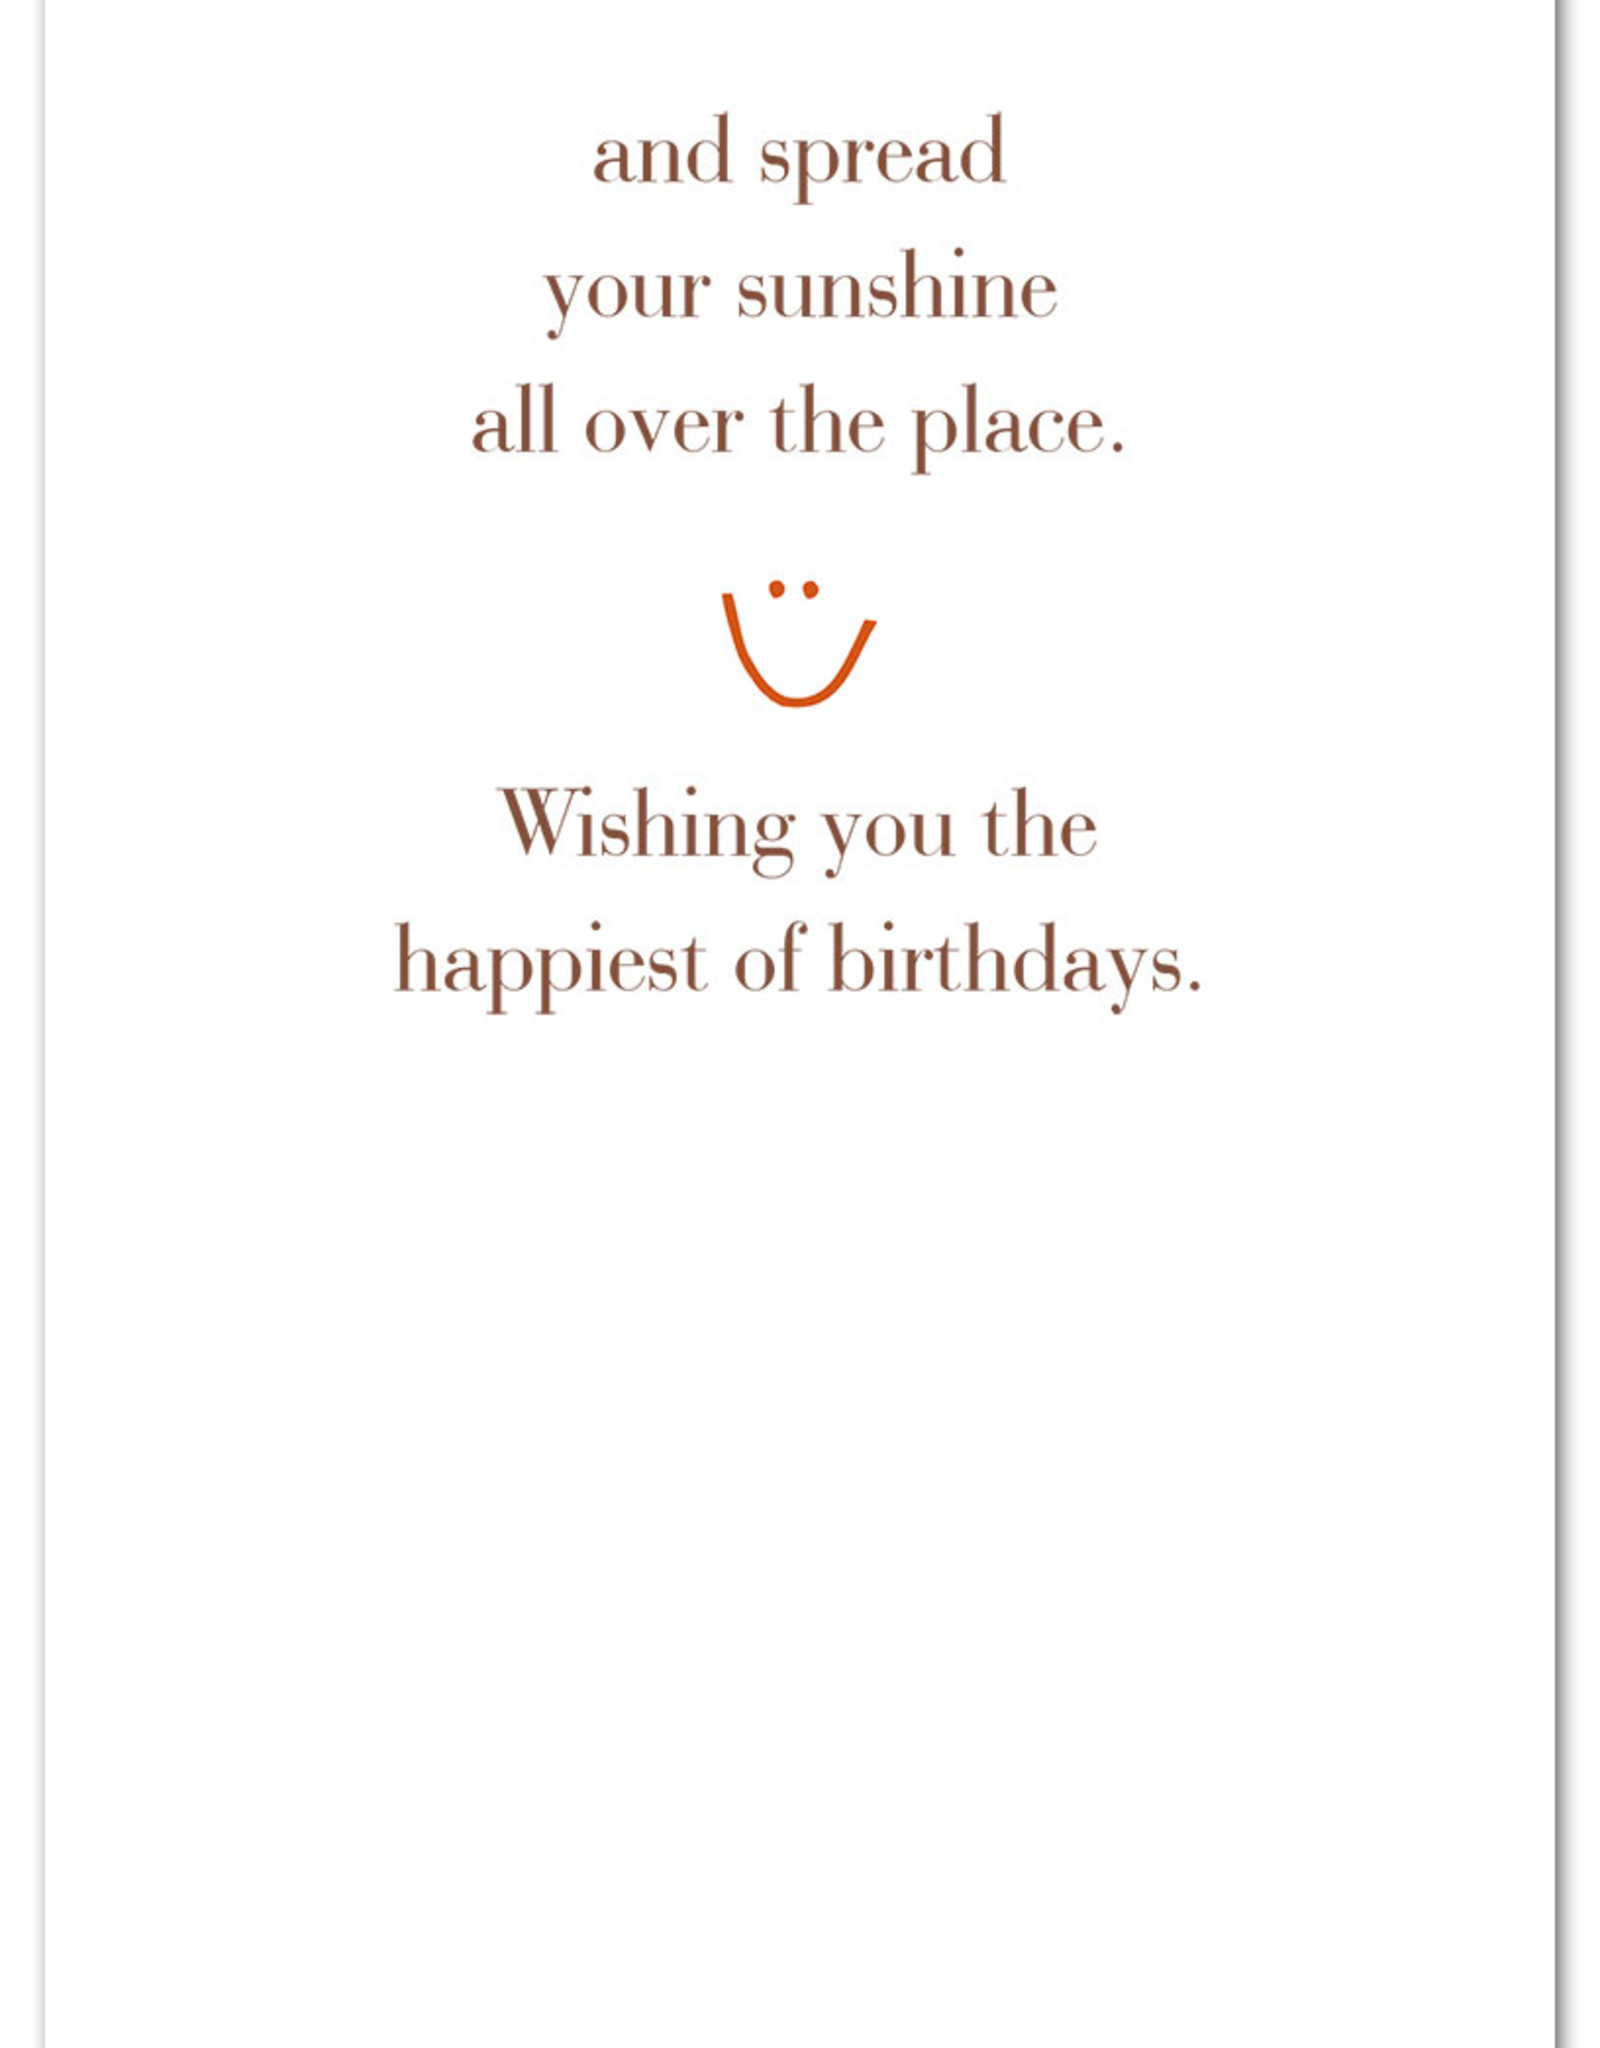 Cardthartic Cardthartic - Put on a happy face birthday card